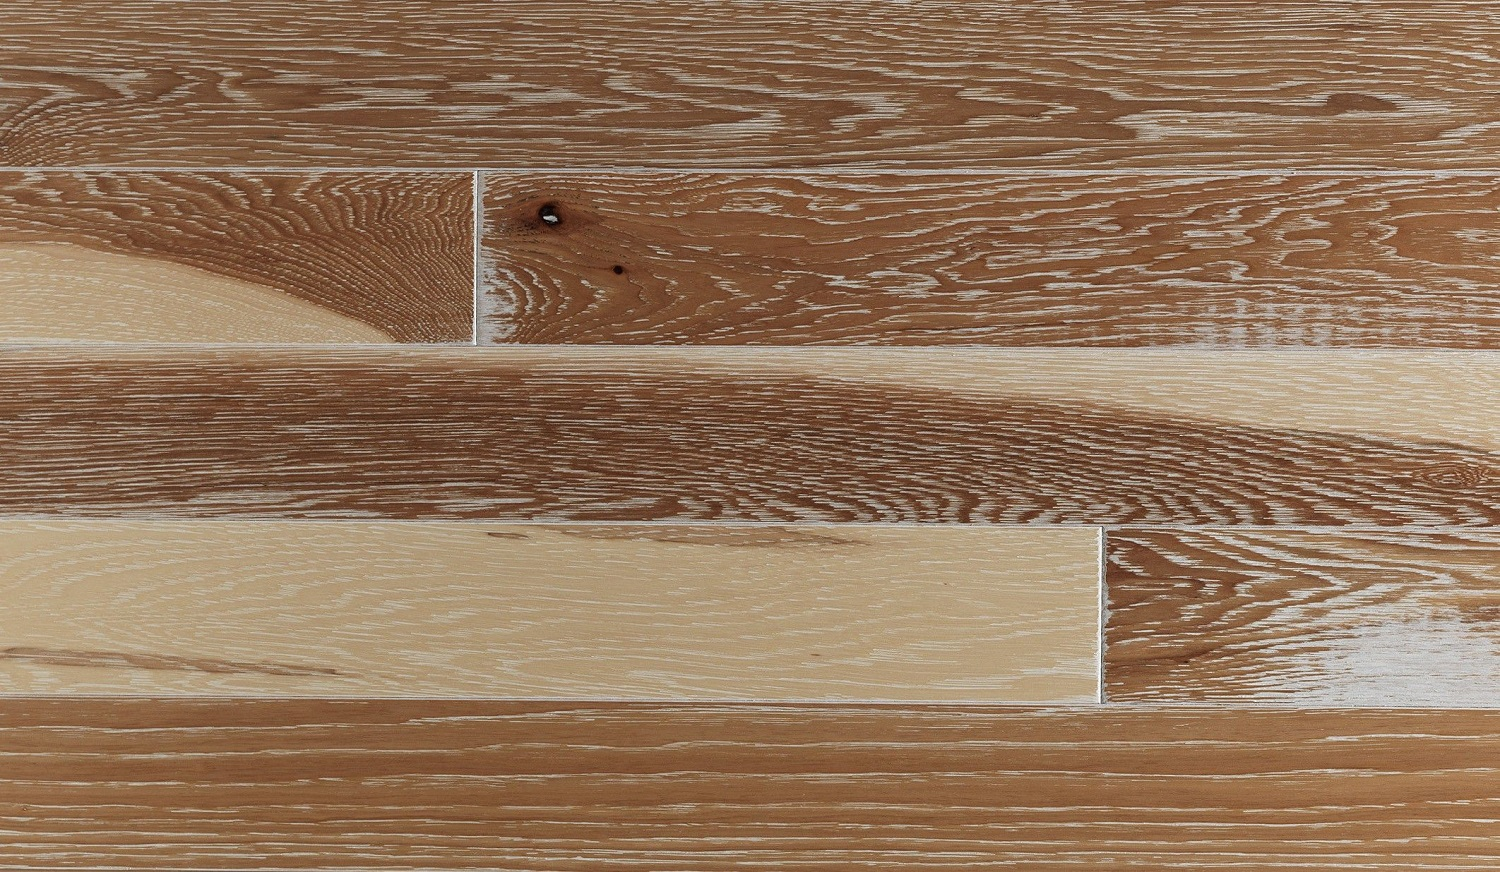 Mercier Hickory Cape Cod Hardwood Flooring 4 1 4 X 9 72